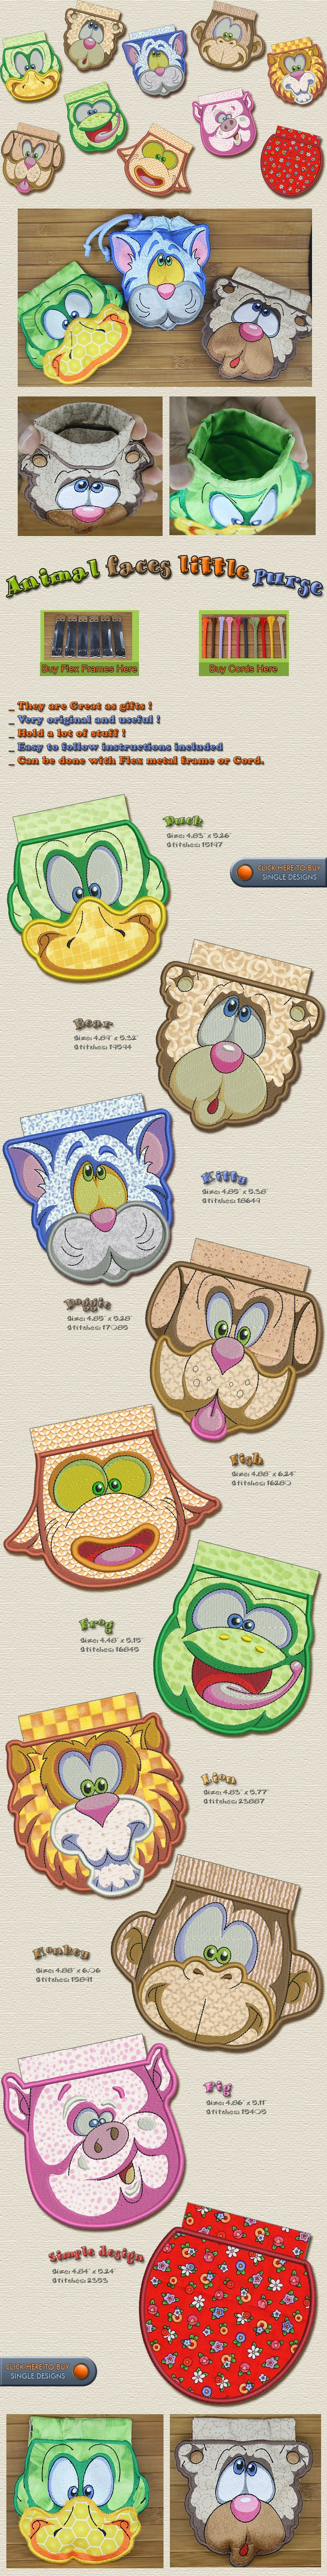 225 best free embroidery patterns images on Pinterest